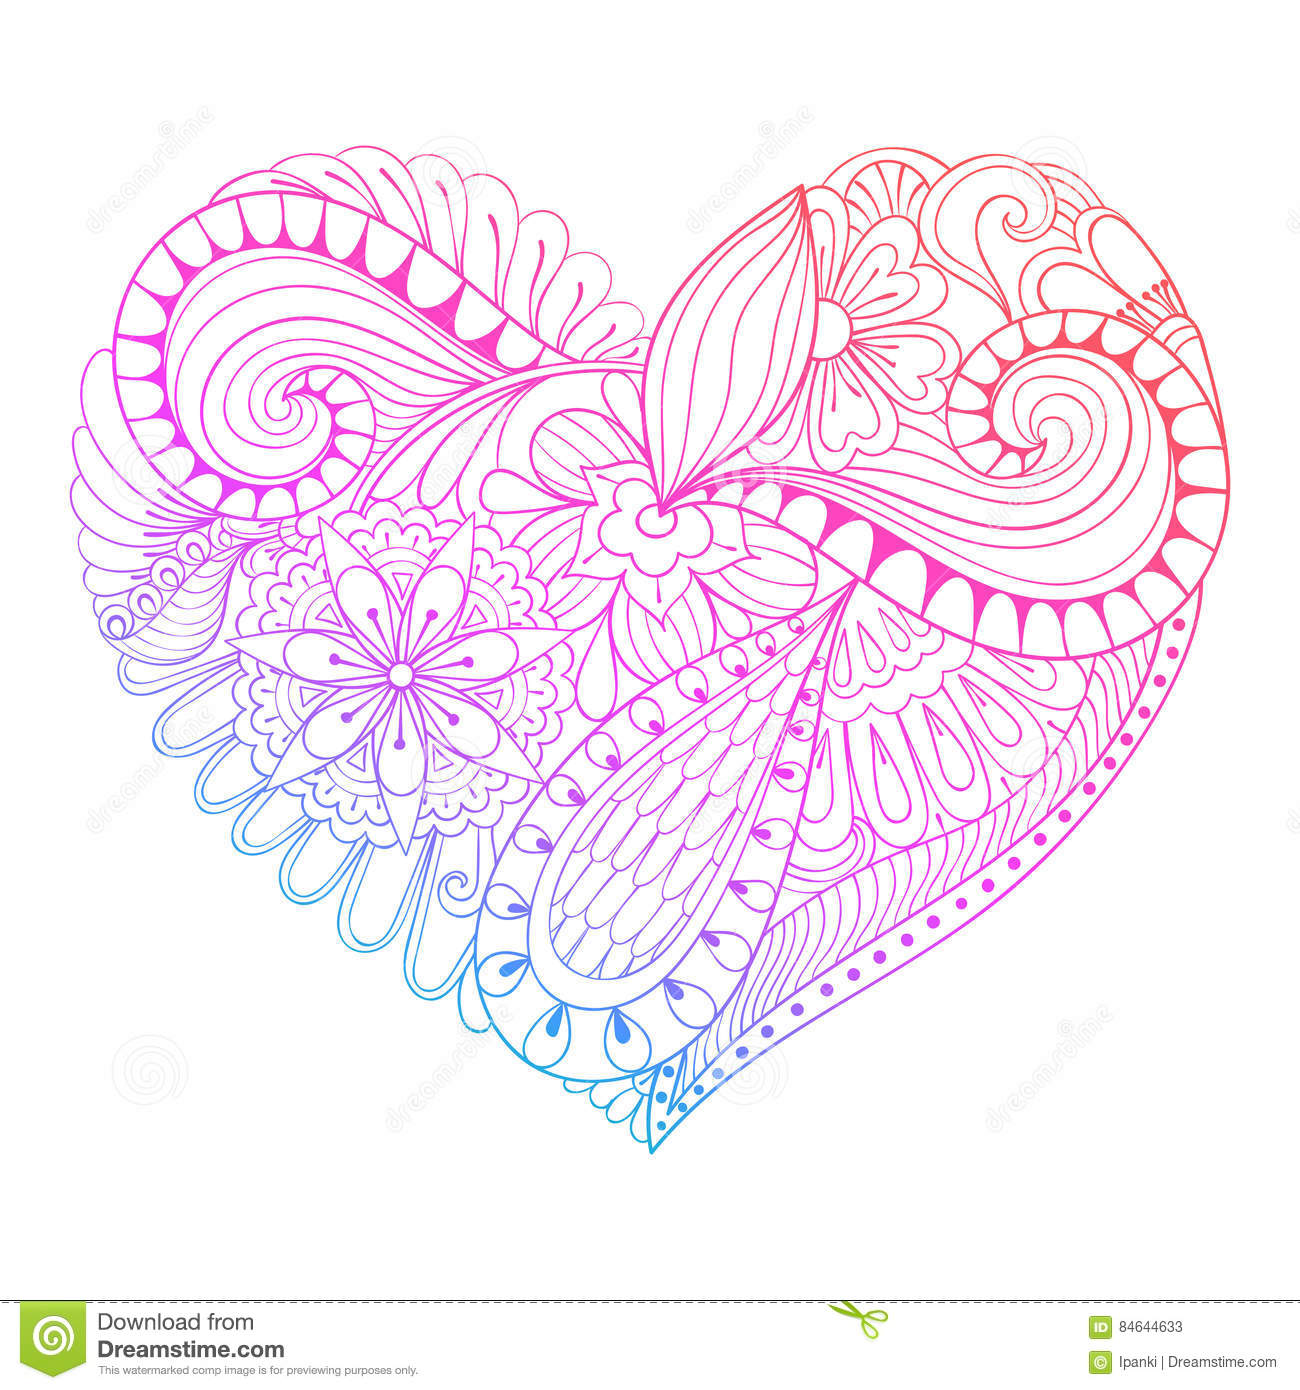 heart zentangle coloring pages - photo#15